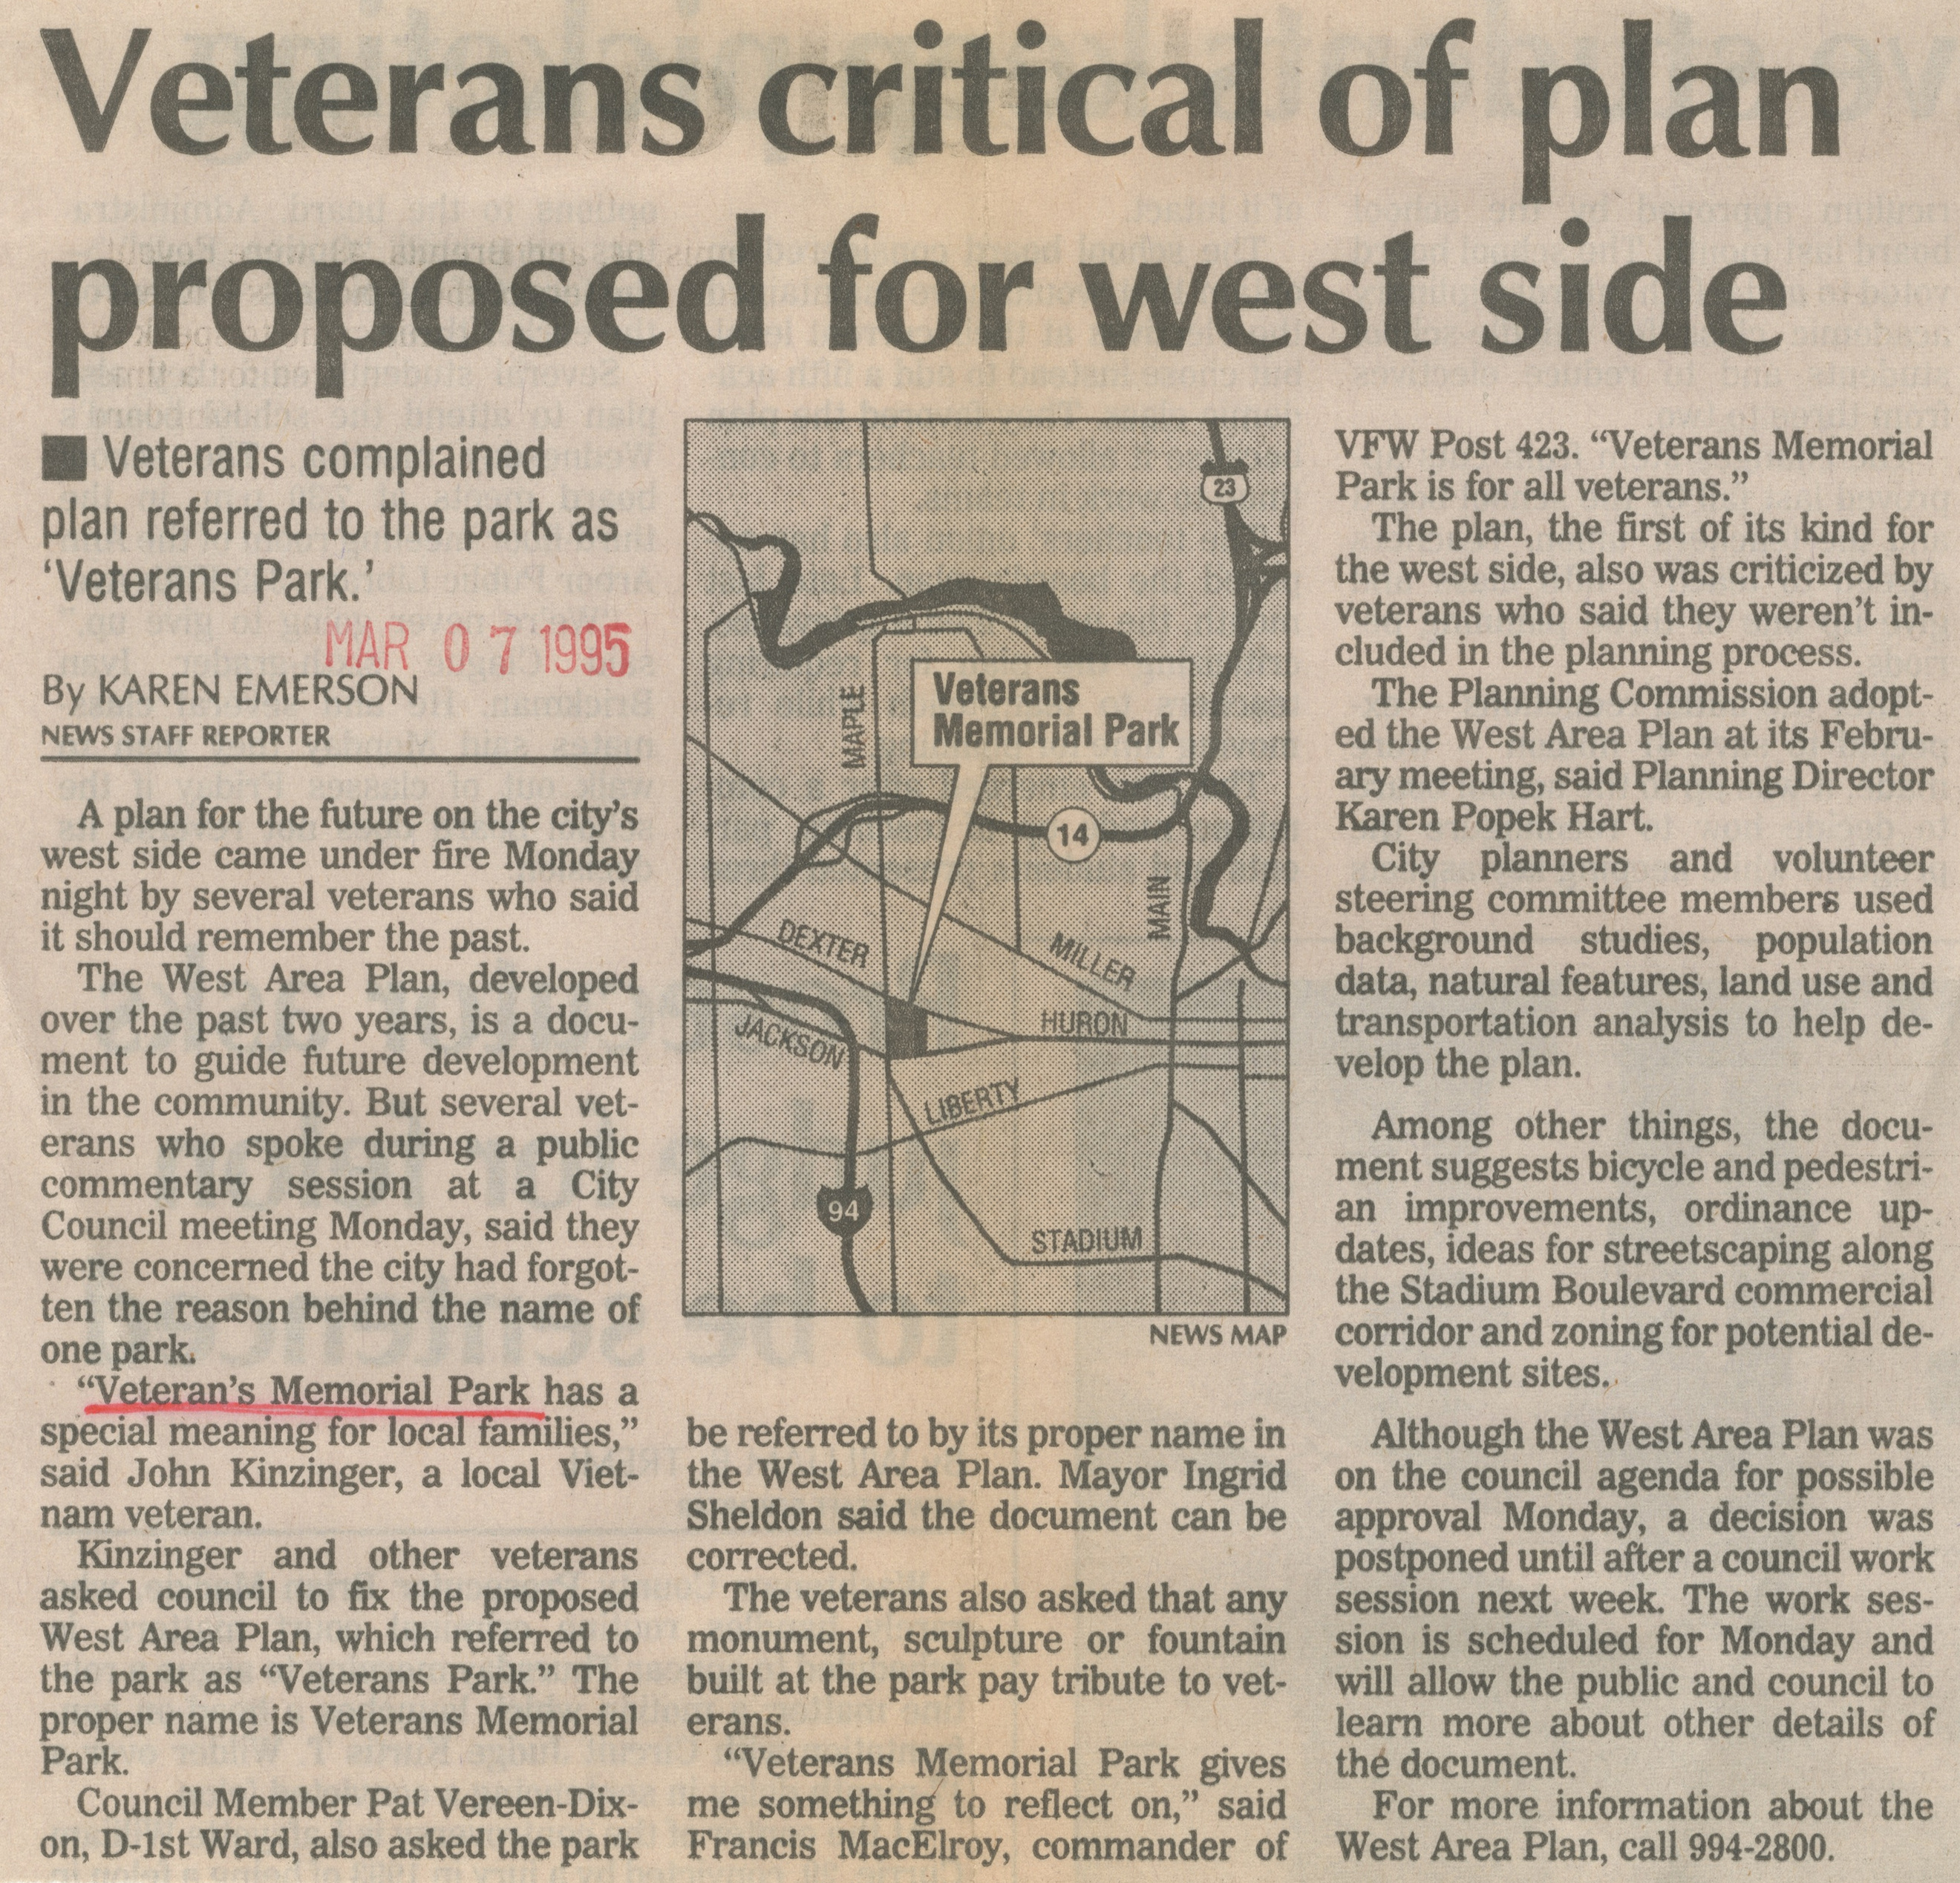 Veterans Critical Of Plan Proposed For West Side image